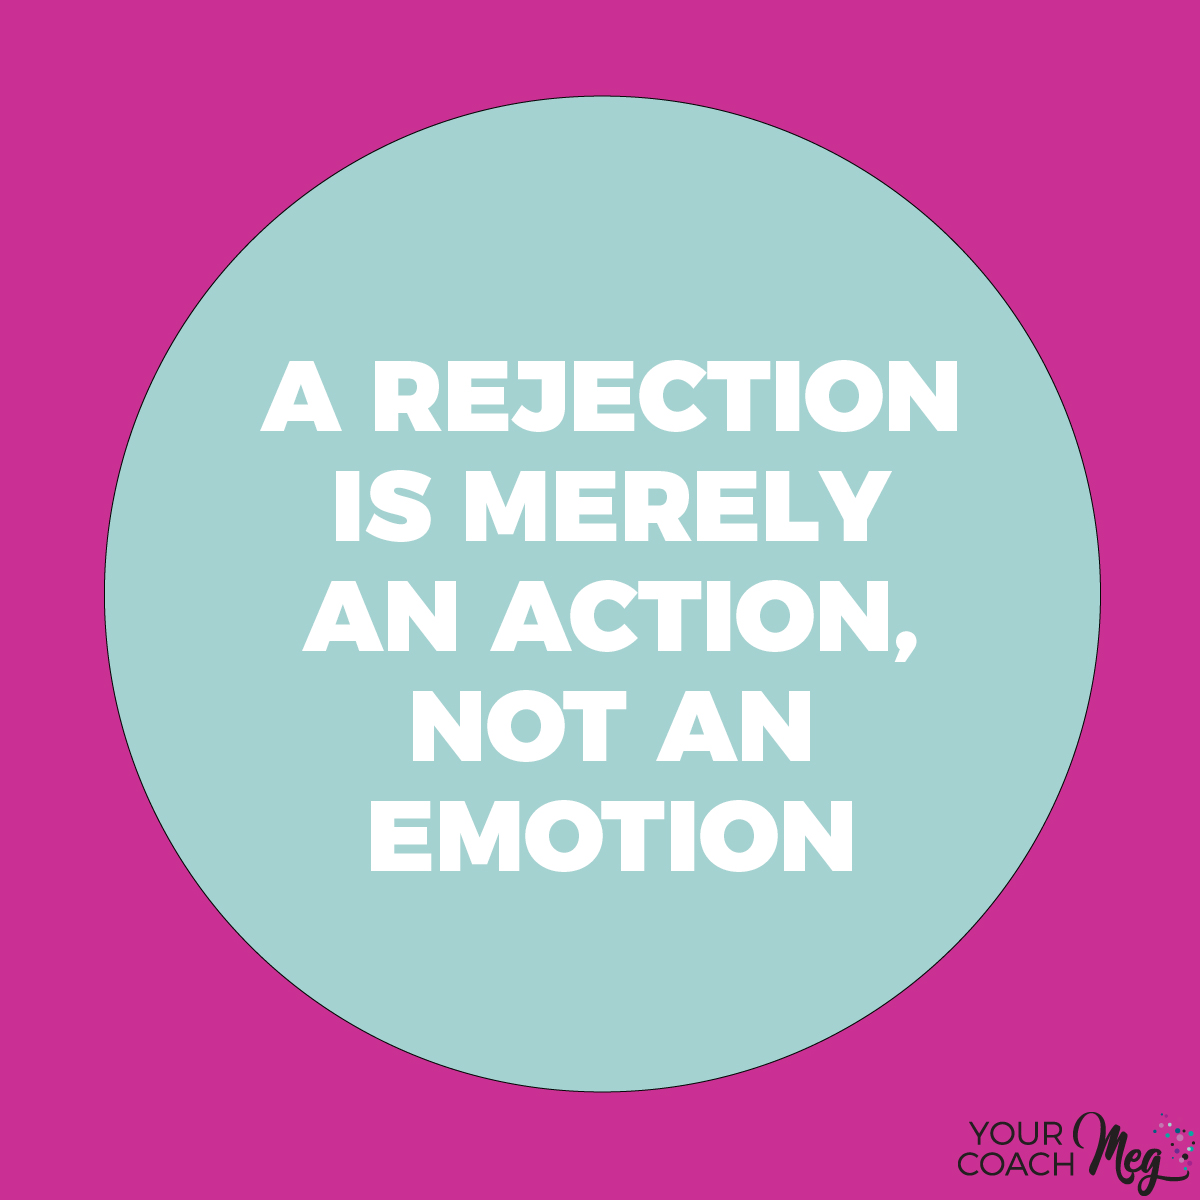 A REJECTION IS AN ACTION, NOT AN EMOTION